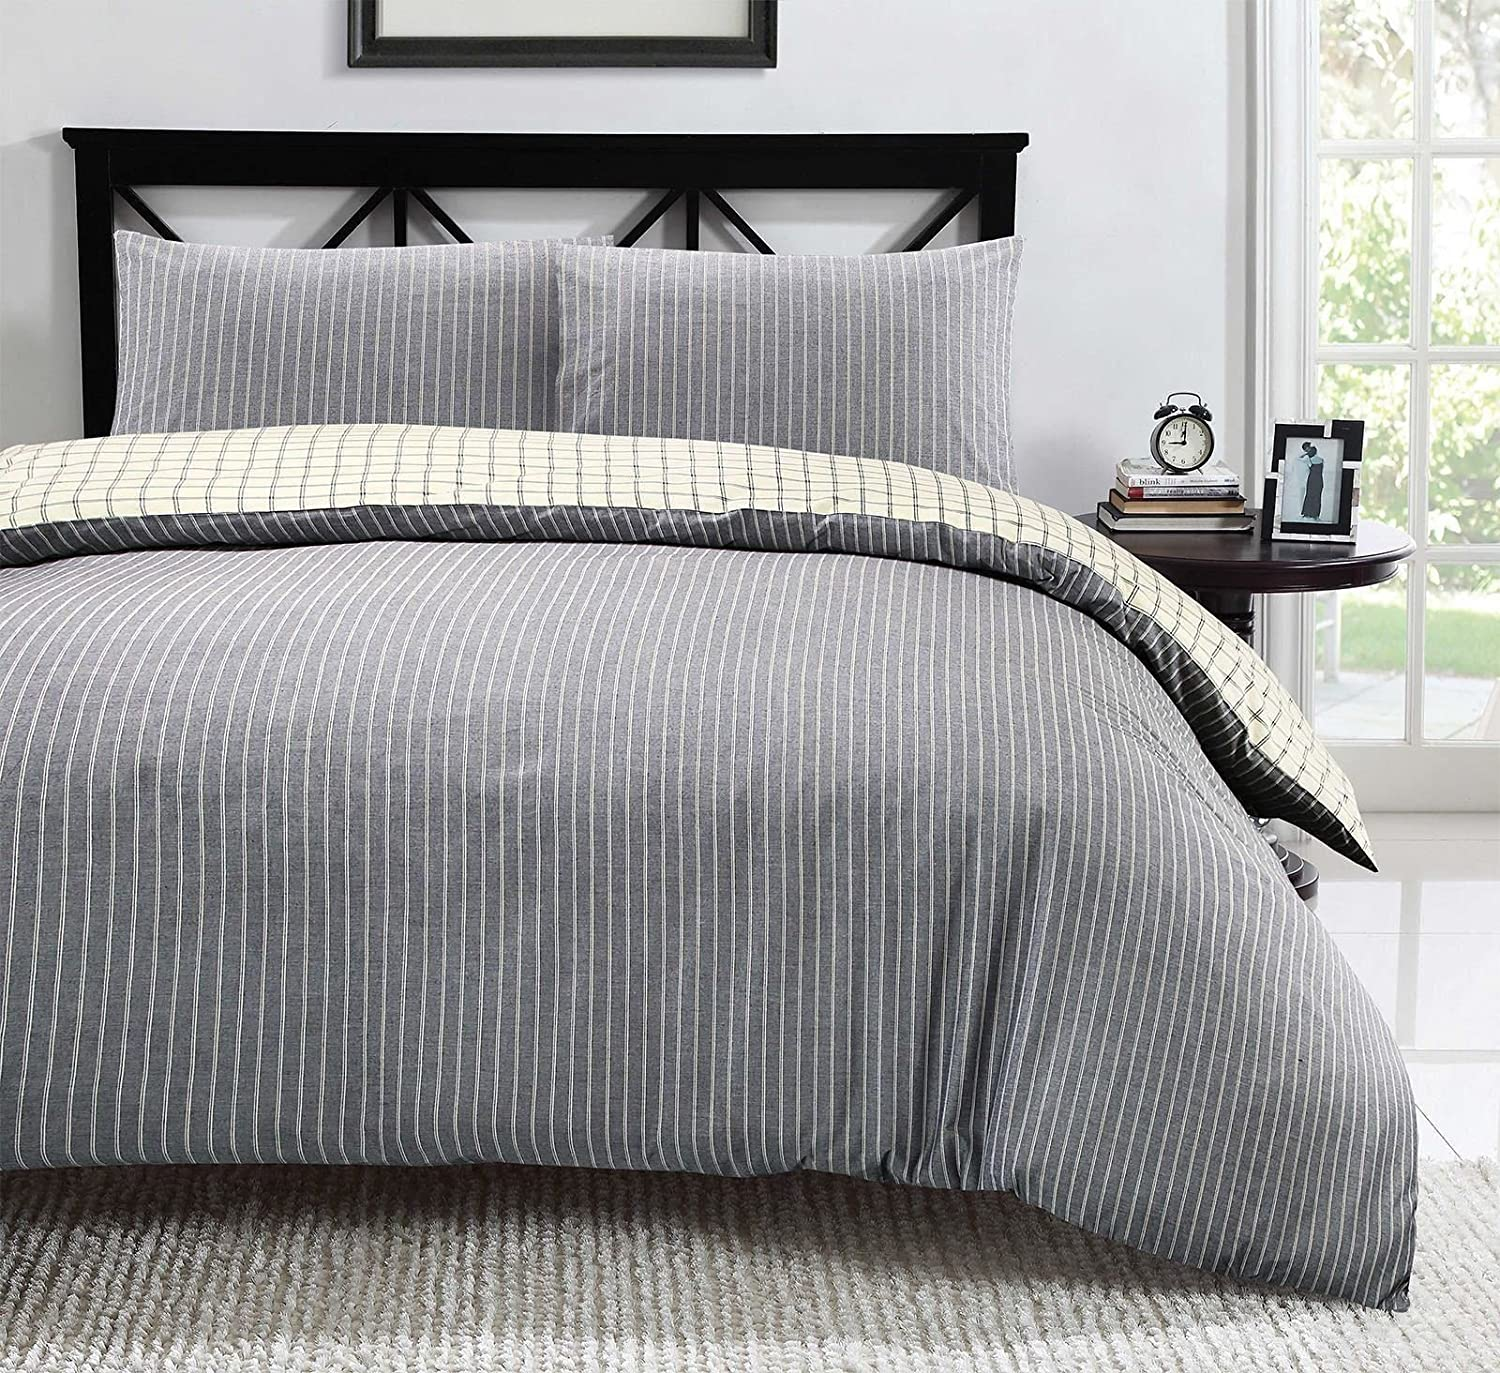 home cream dp duvet blue uk reversible co double amazon striped chambray woven cotton check and jakarta kitchen set cover